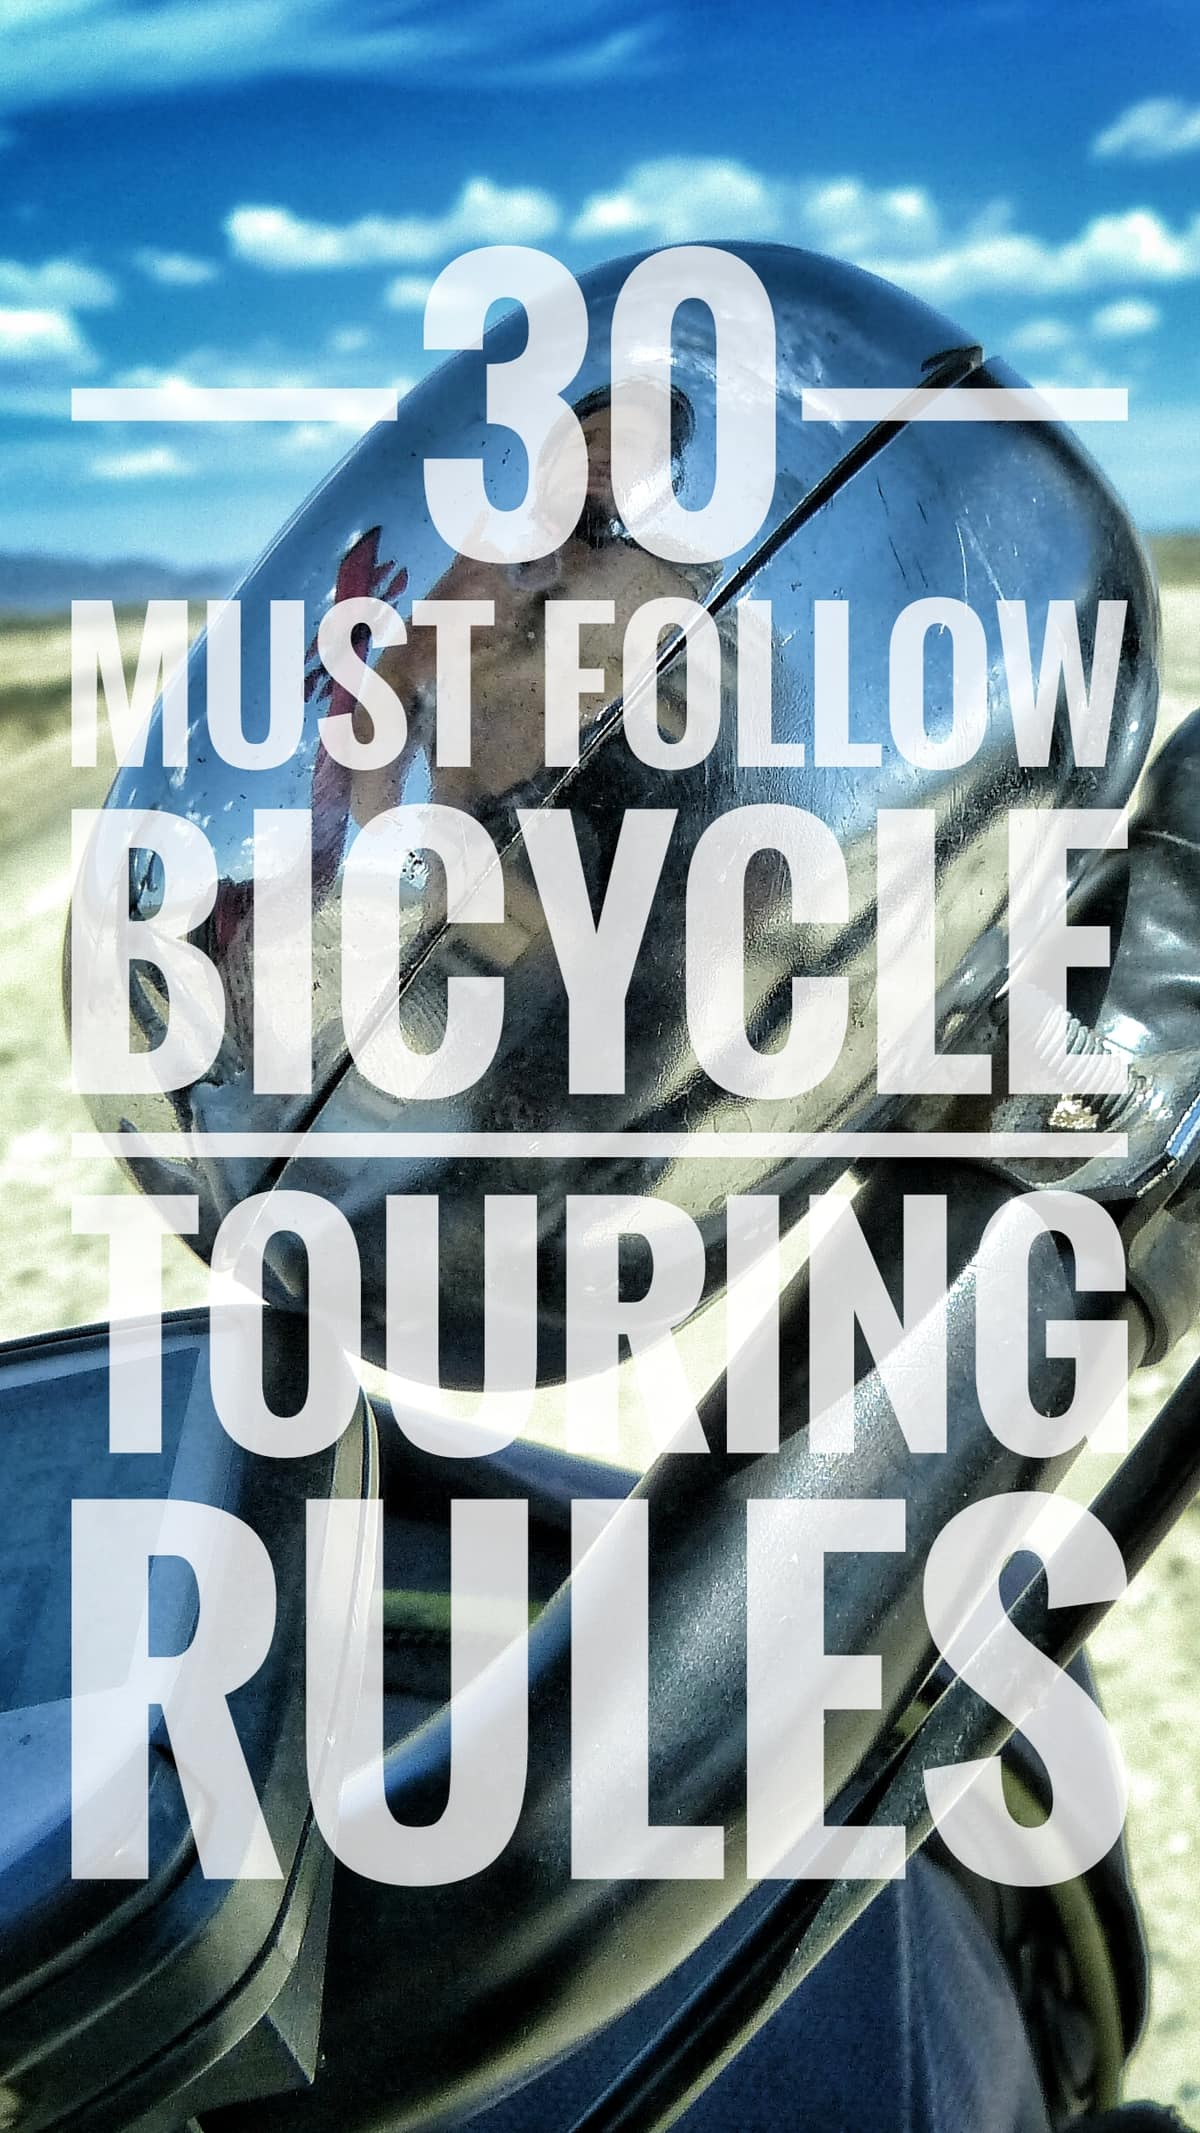 bicycle travel rules advice